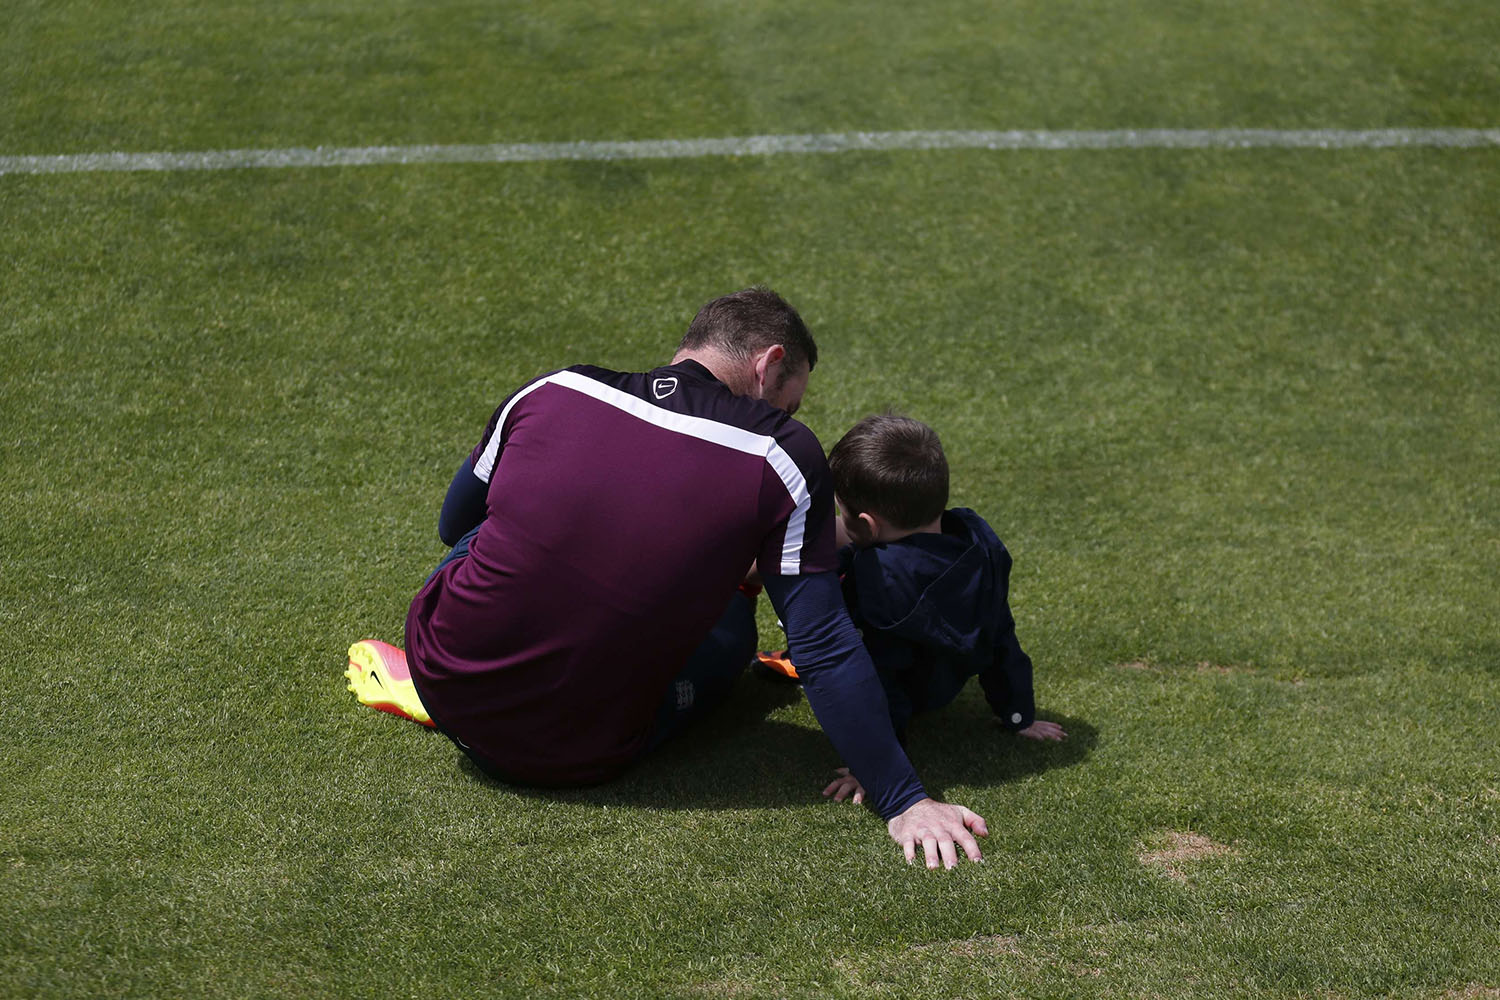 England's national soccer team player Wayne Rooney speaks with his son, Kai, after a training session in Almancil, near Faro in Portugal, on May 21, 2014.